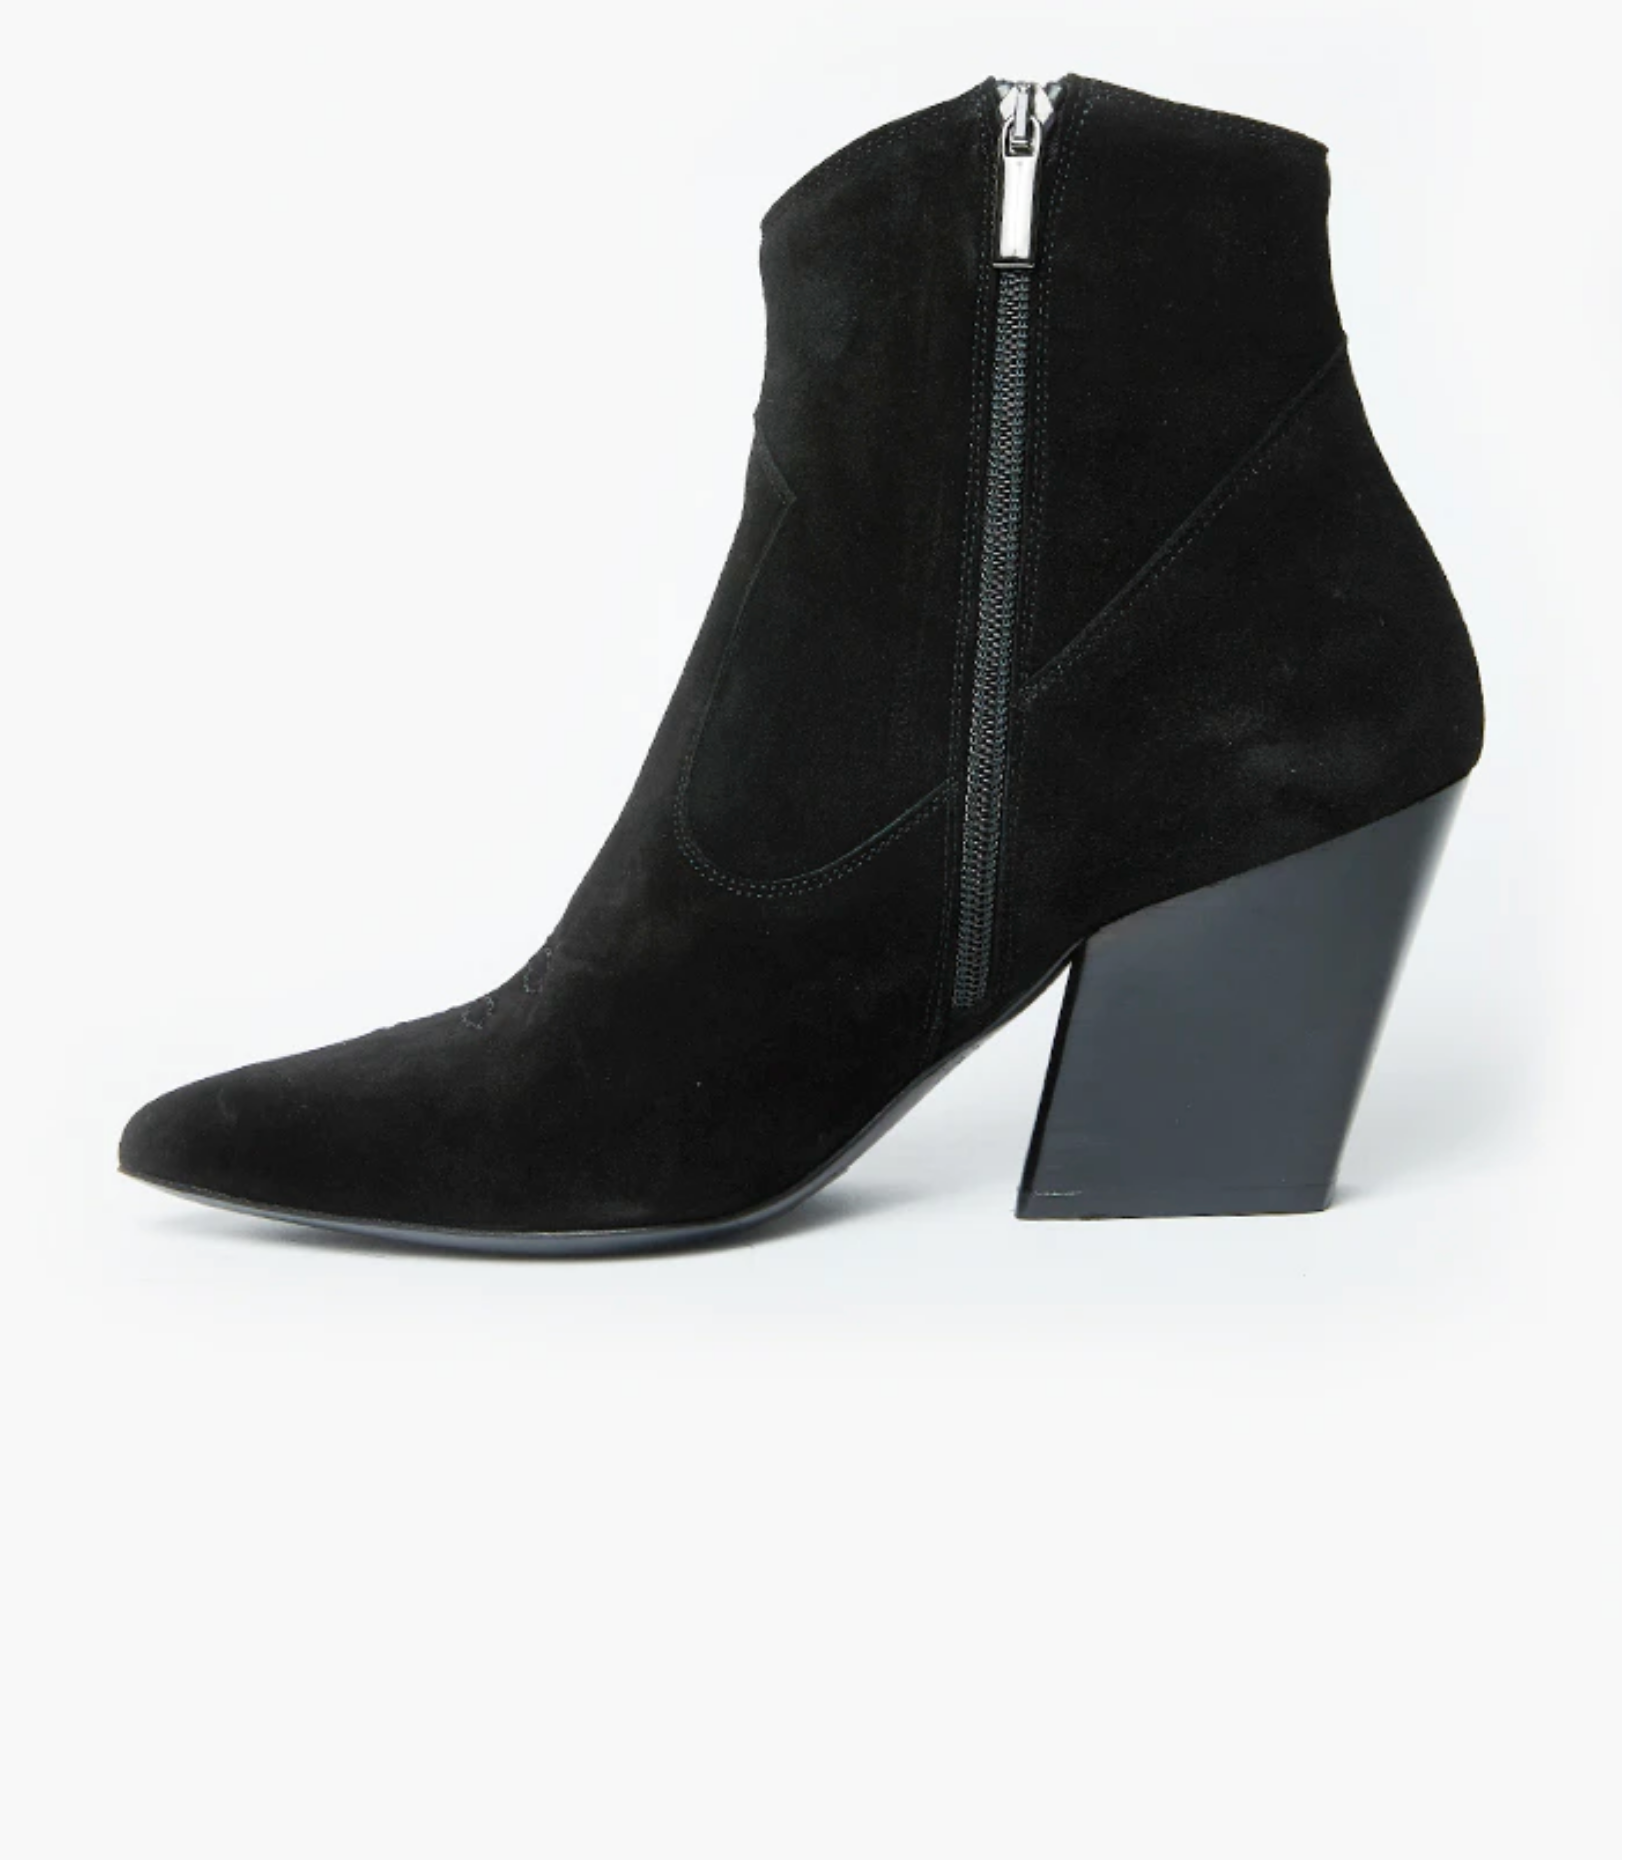 Department Of Finery Georgia - Black Suede